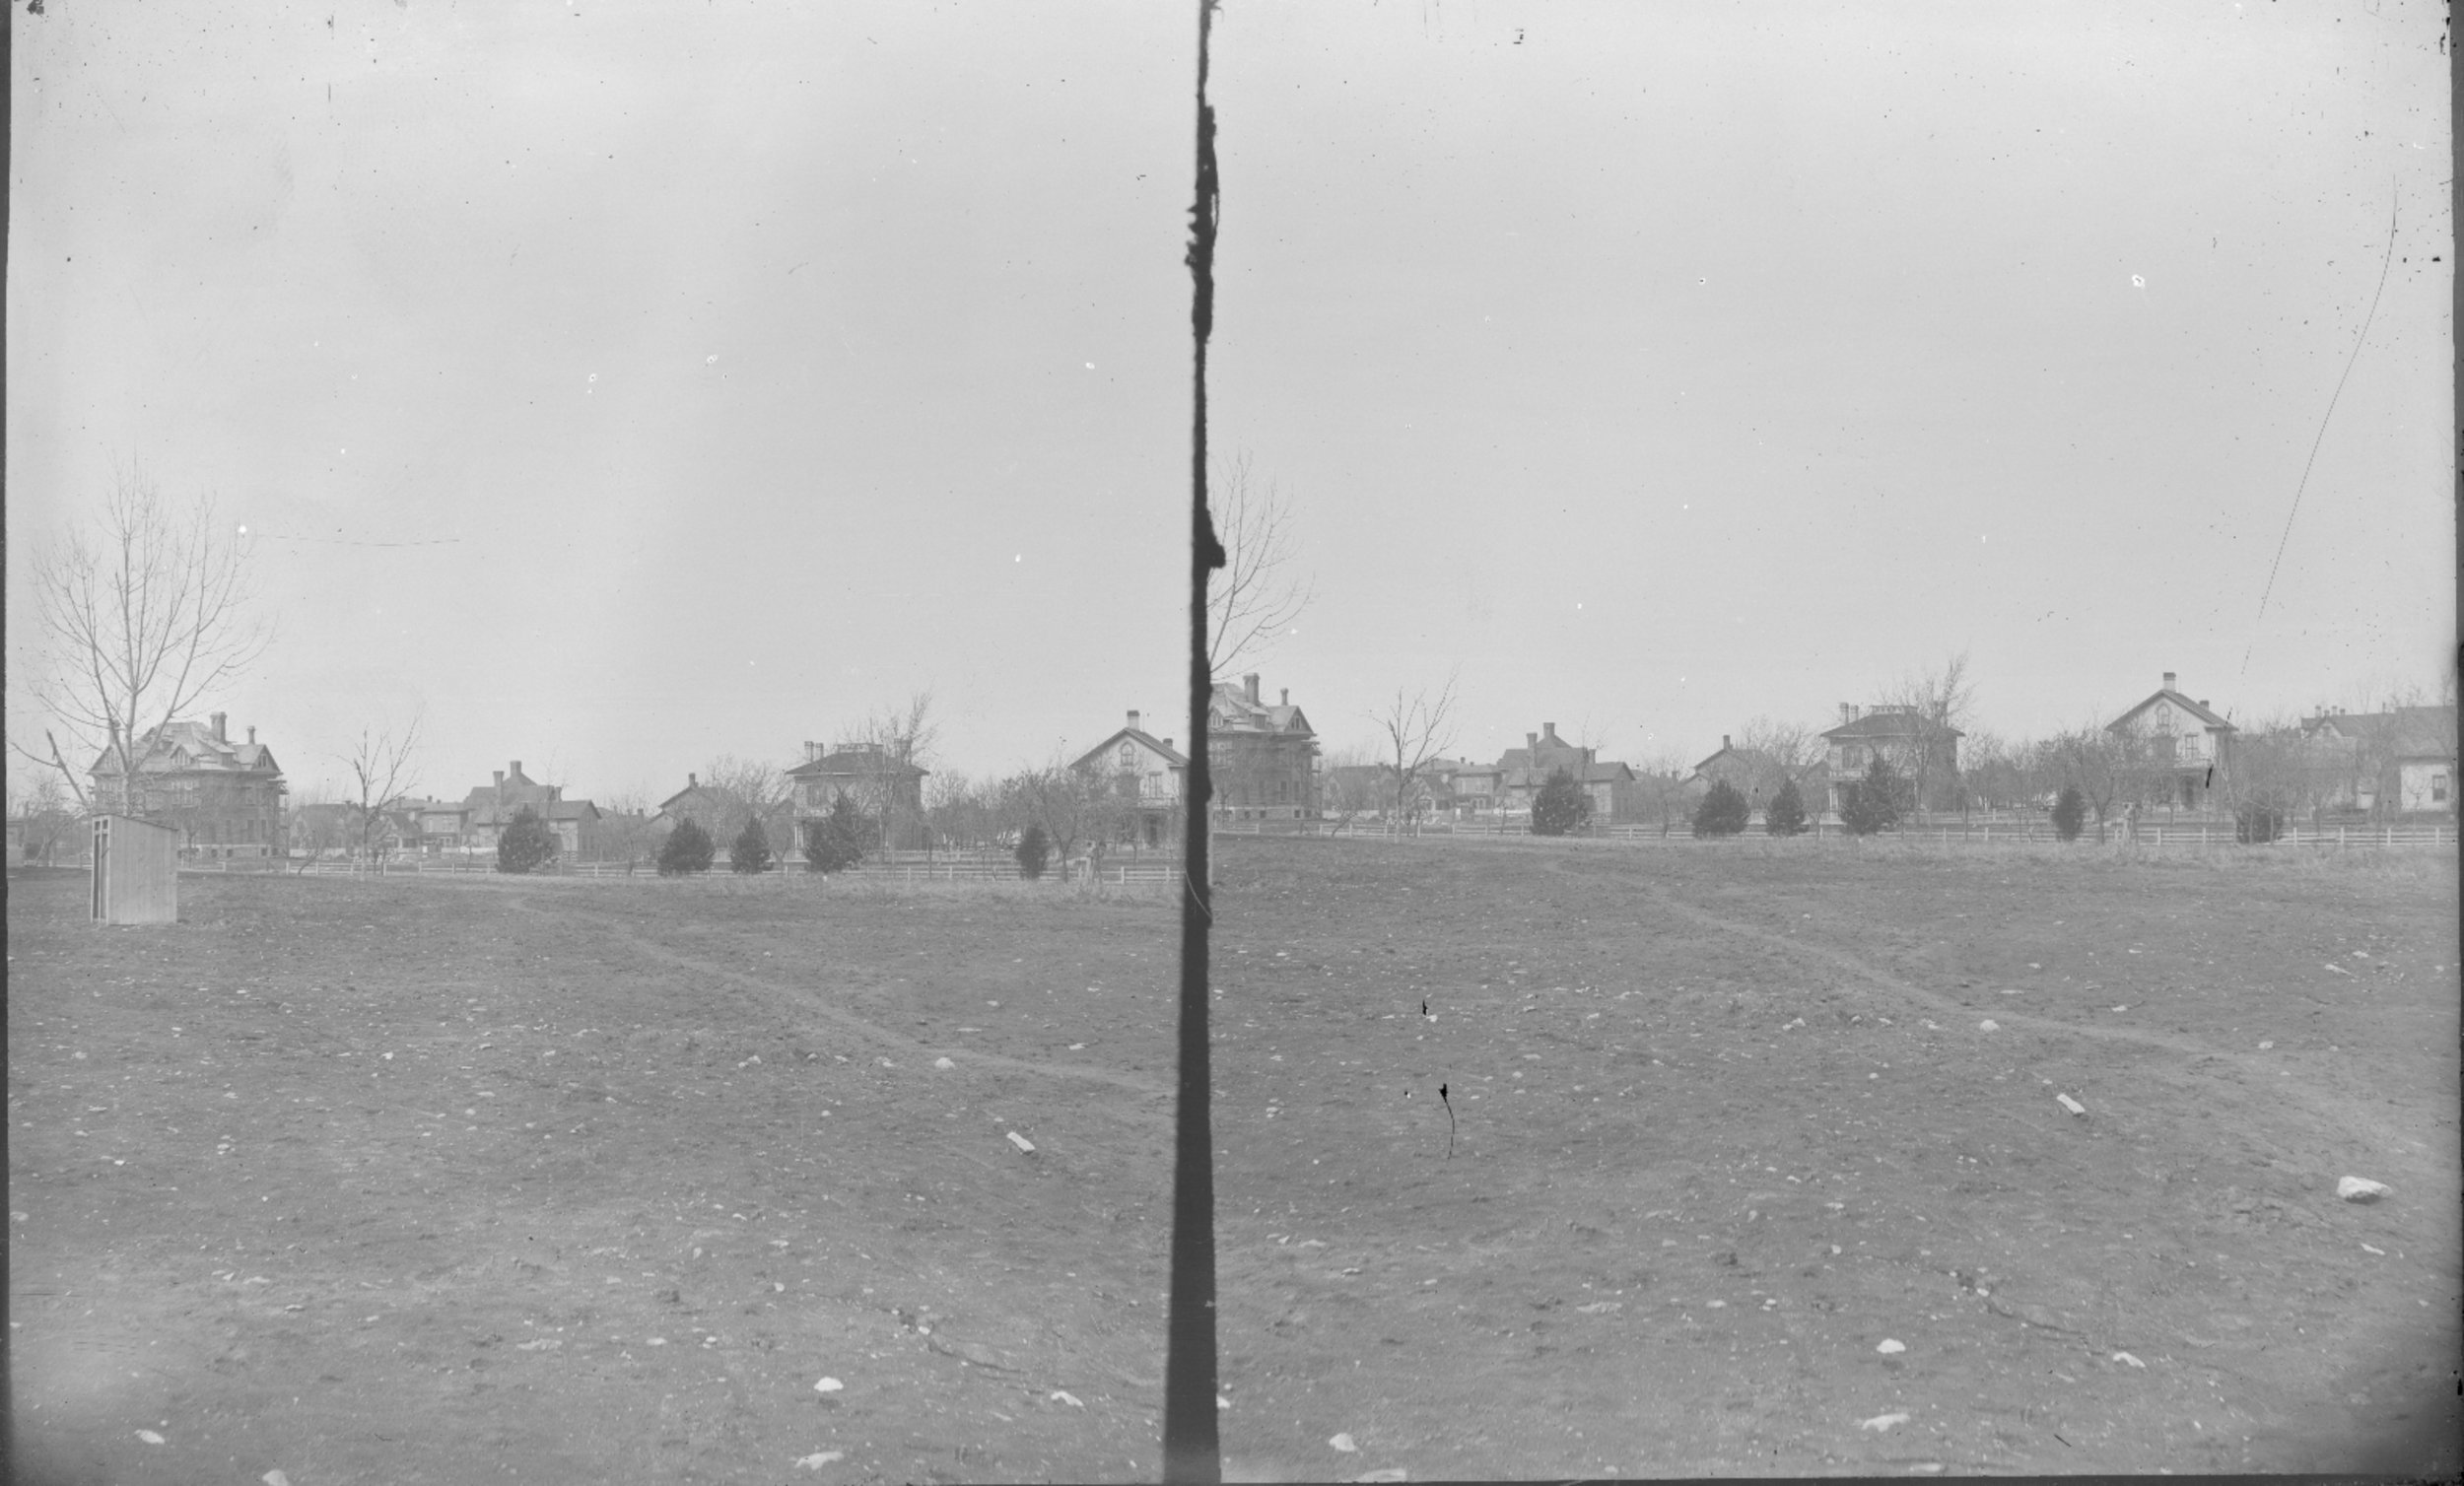 Fort Lyon and Fort Union - Unidentified buildings. Neg #10